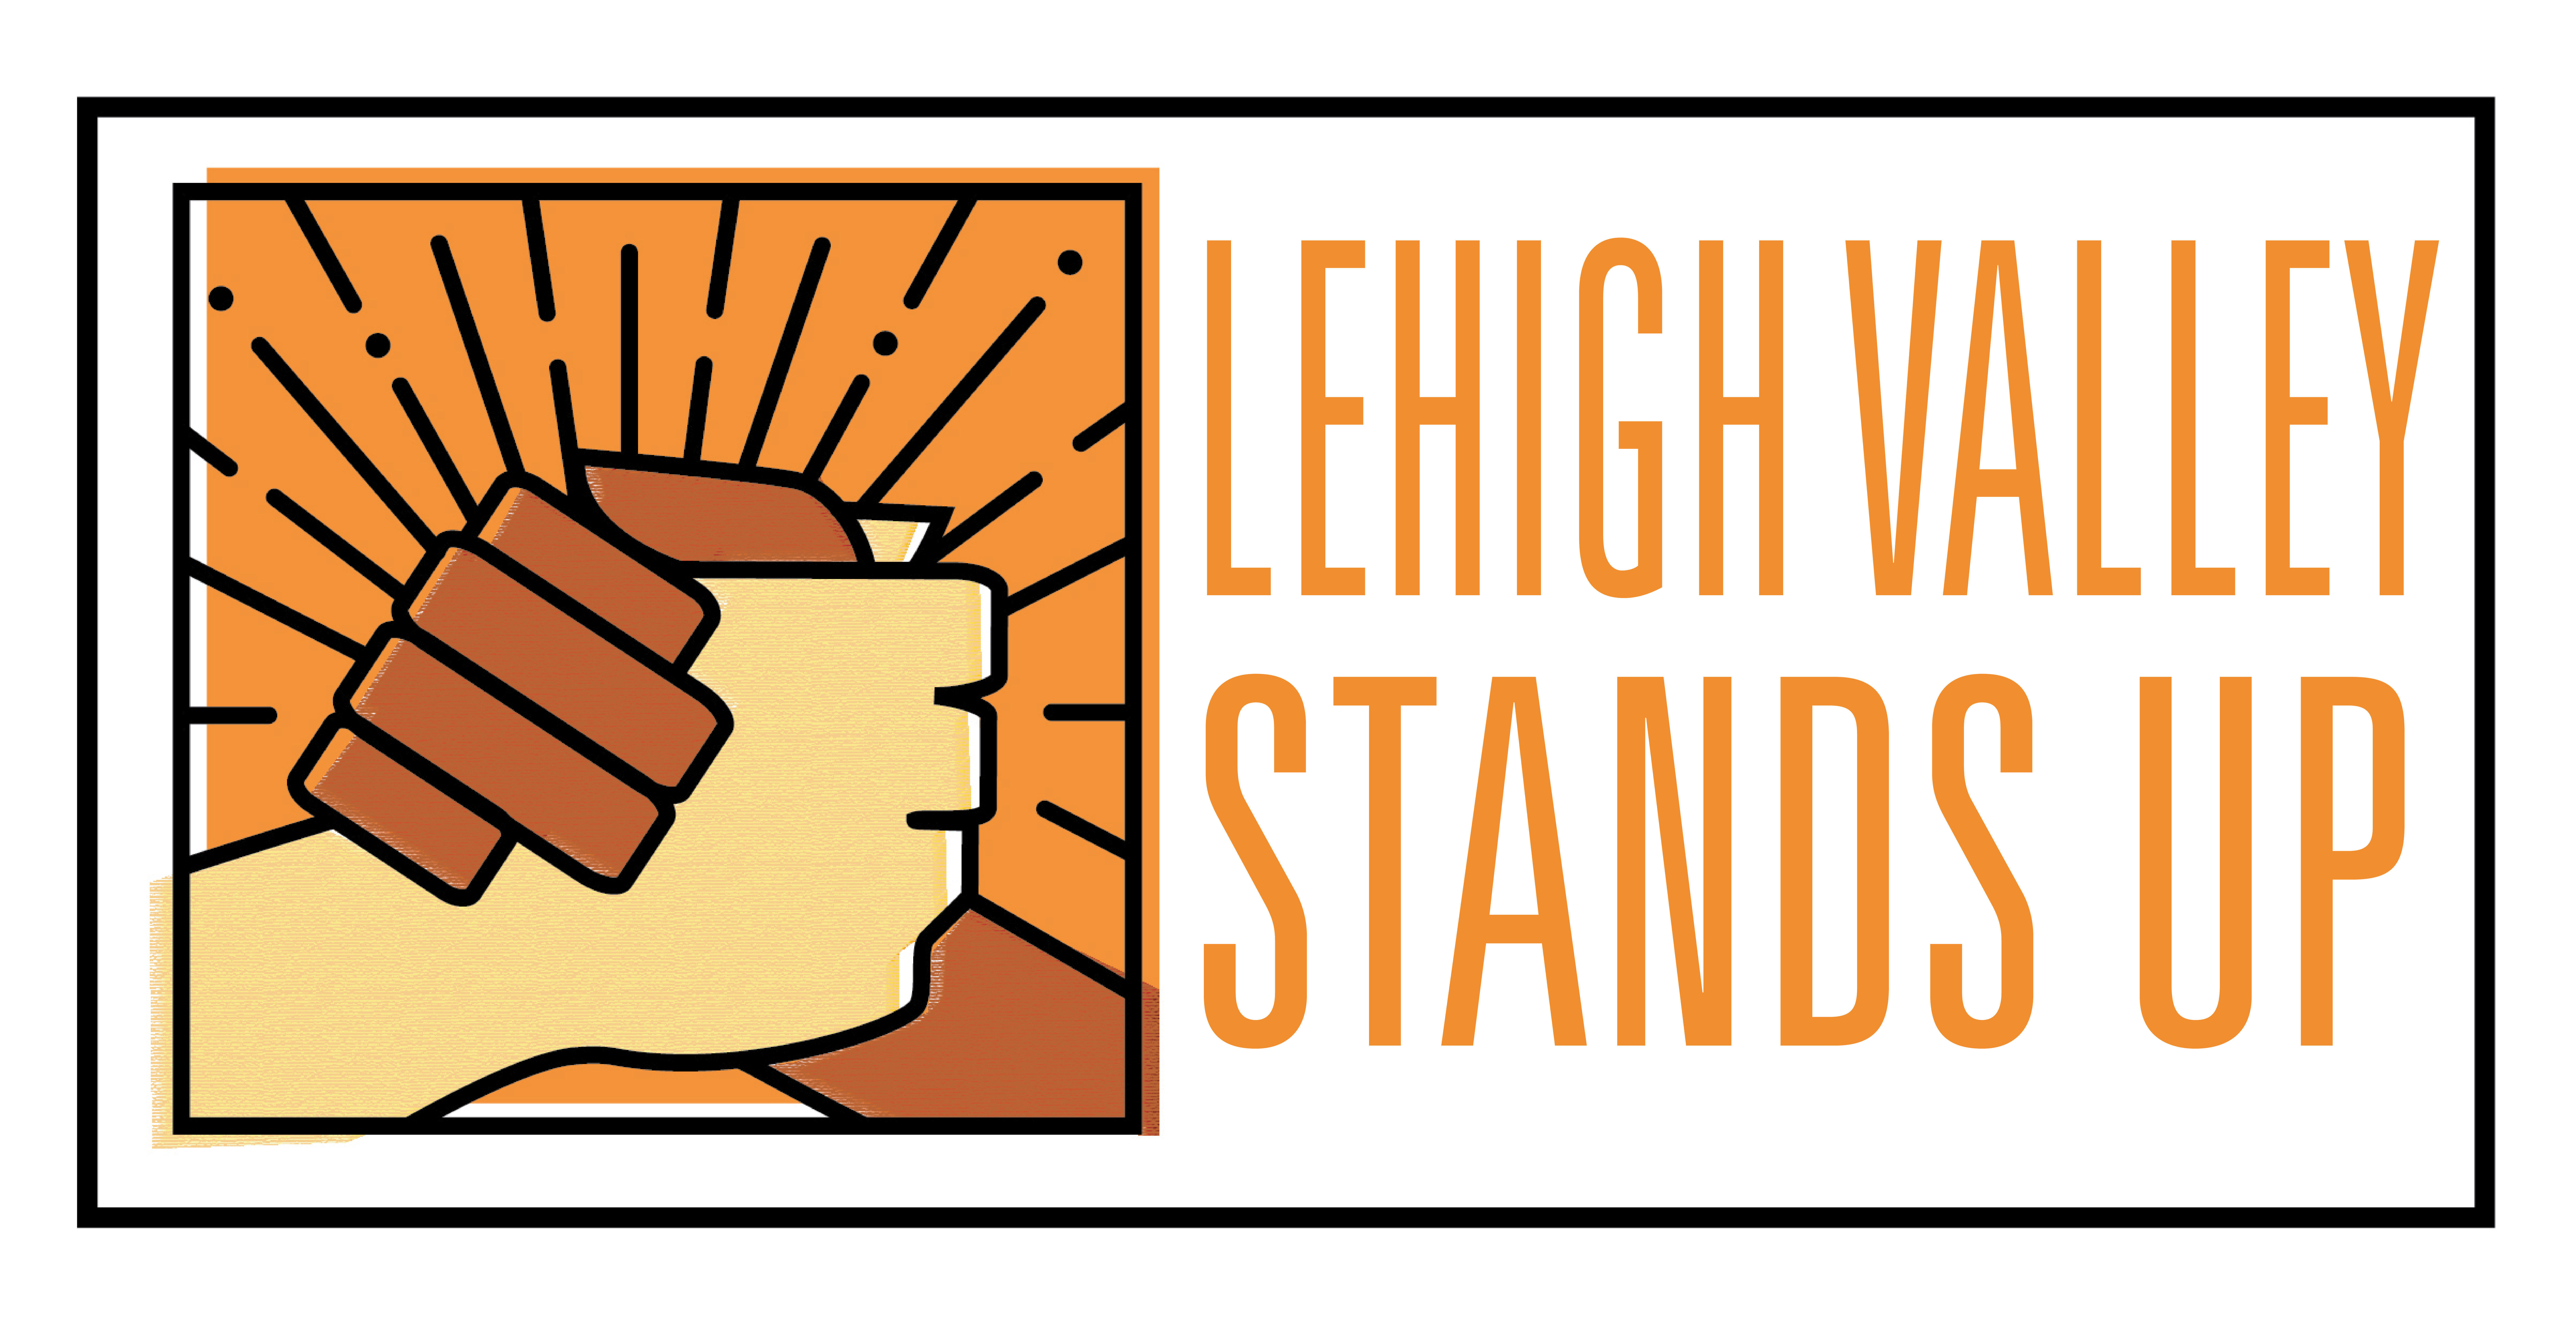 Lehigh Valley Stands Up